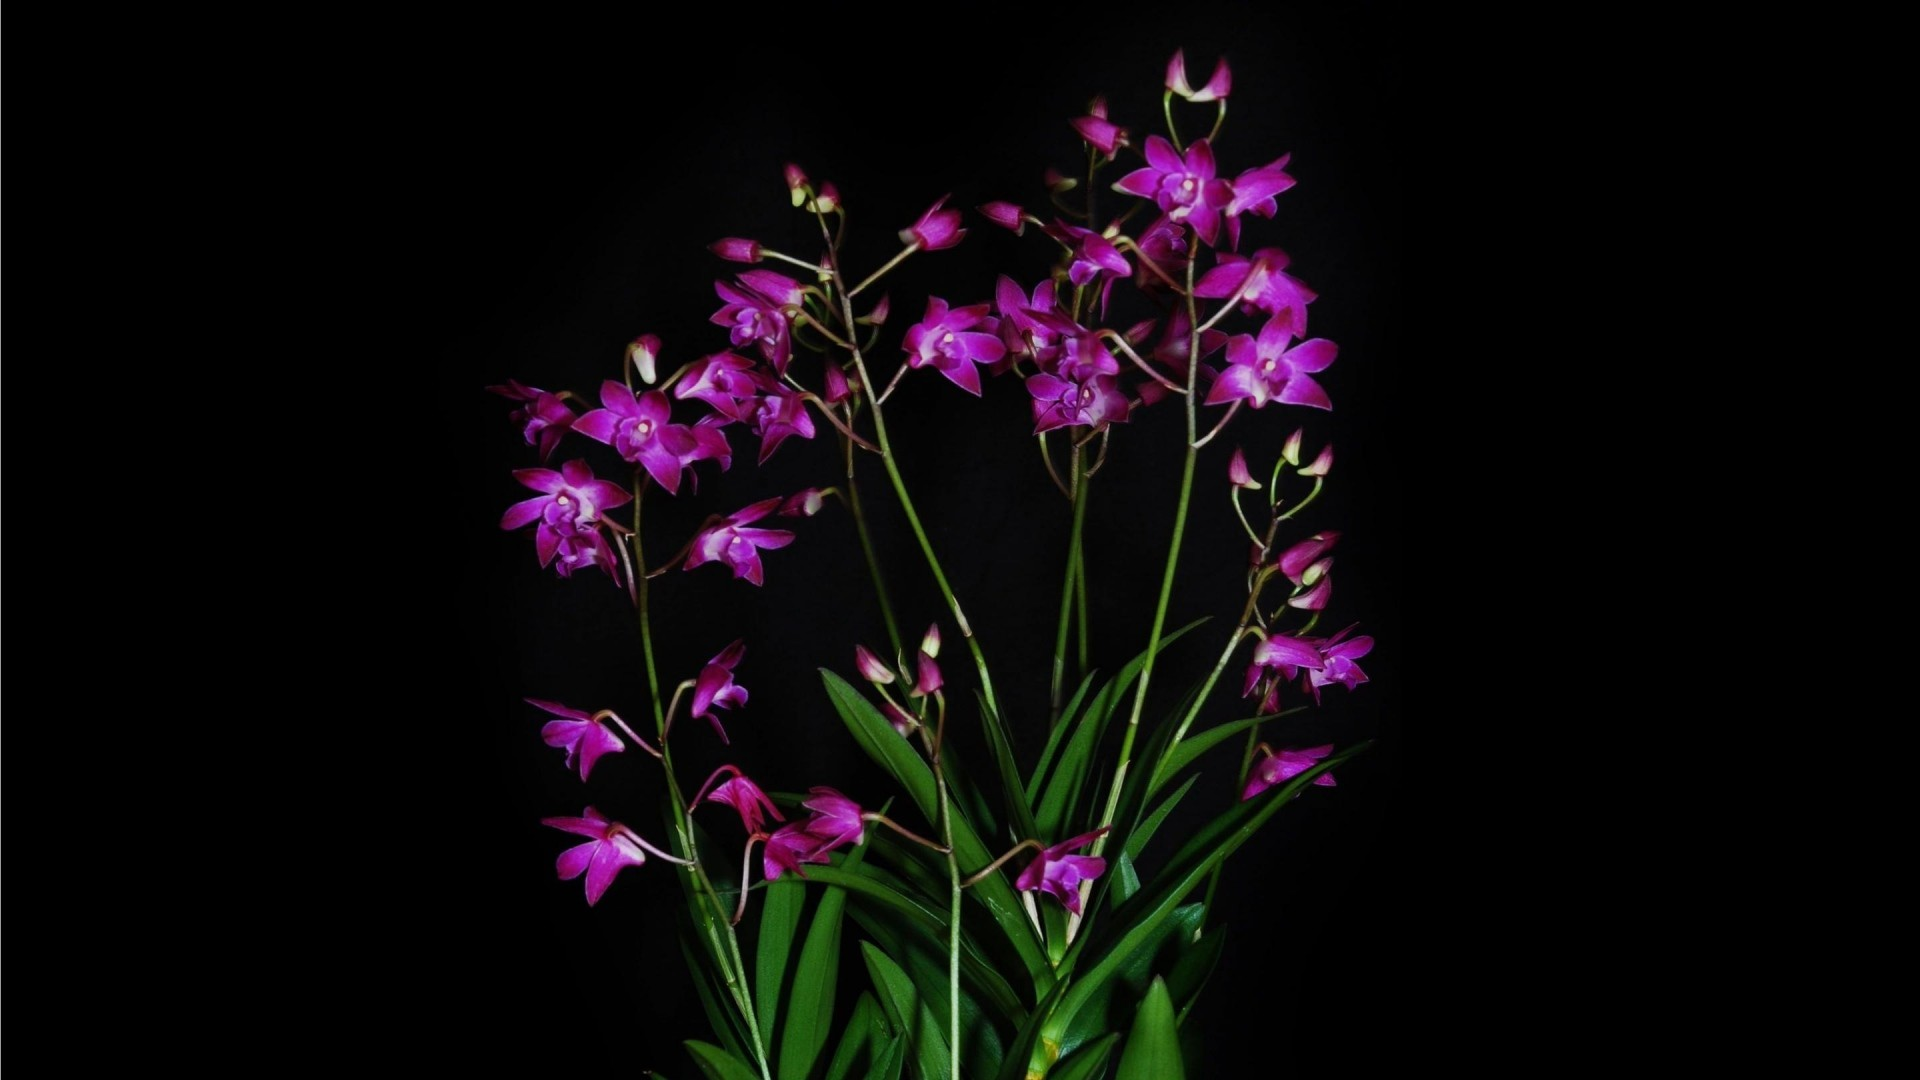 Pleasant Orchid Exotic Black Background Contrast Hd Images Wallpaper